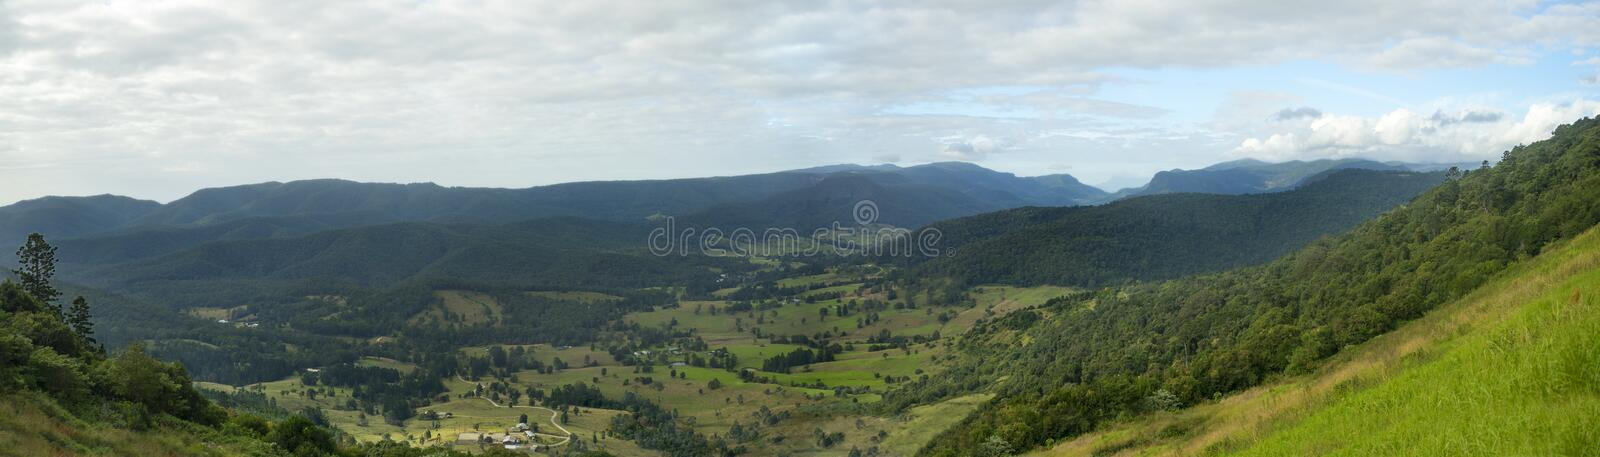 42x12 Inch Numinbah Valley Panorama Australia. A 42x12-inch size high definition image of the Numinbah valley in Queensland in Australia. View taken from Rosins royalty free stock photography